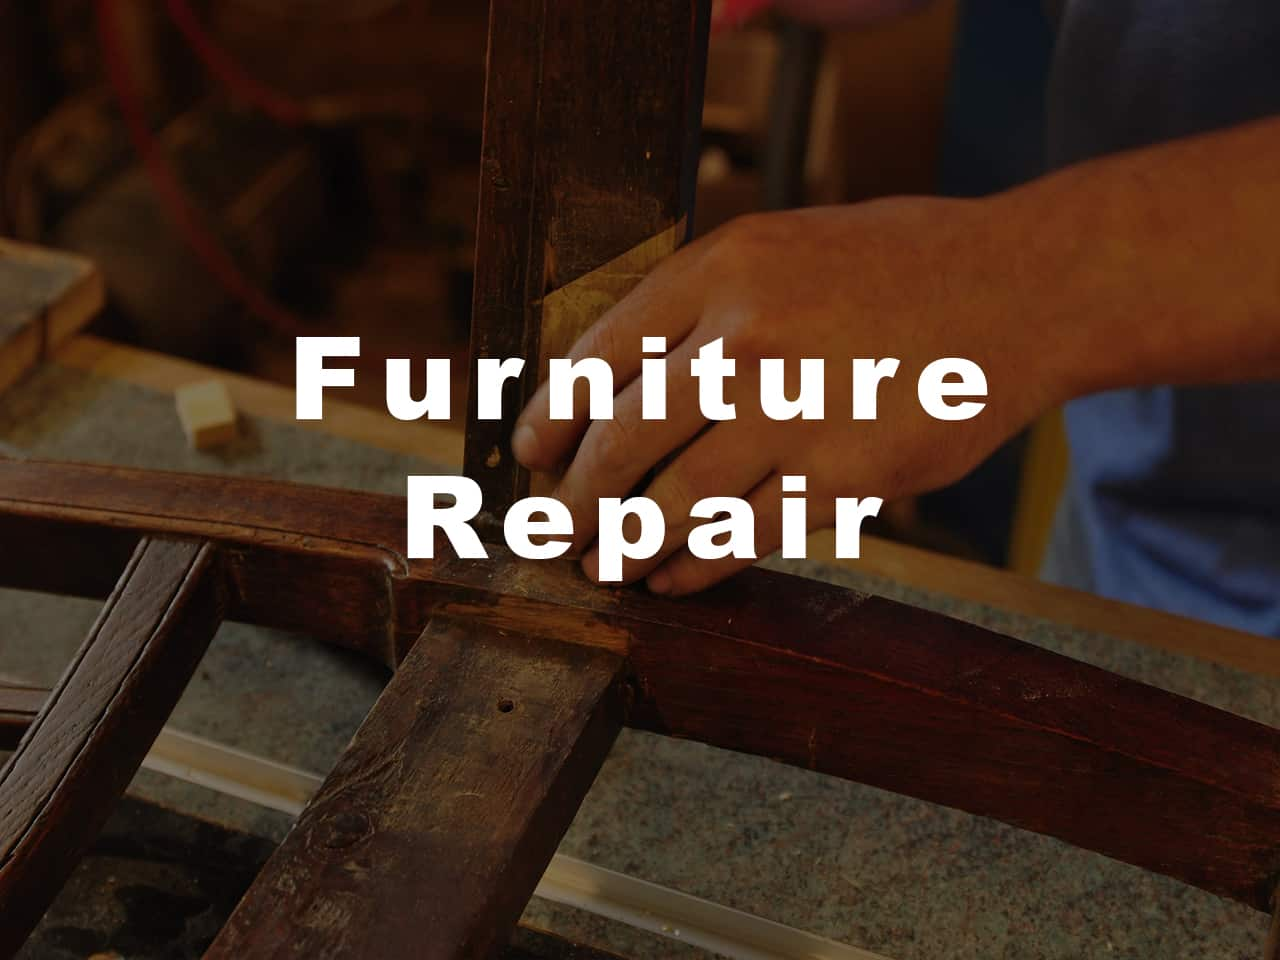 Bon Victor Lia Refinishers, Cleveland Furniture Refinishing Furniture Repair  Akron Akron Furniture Refinishing Furniture Repair Cleveland